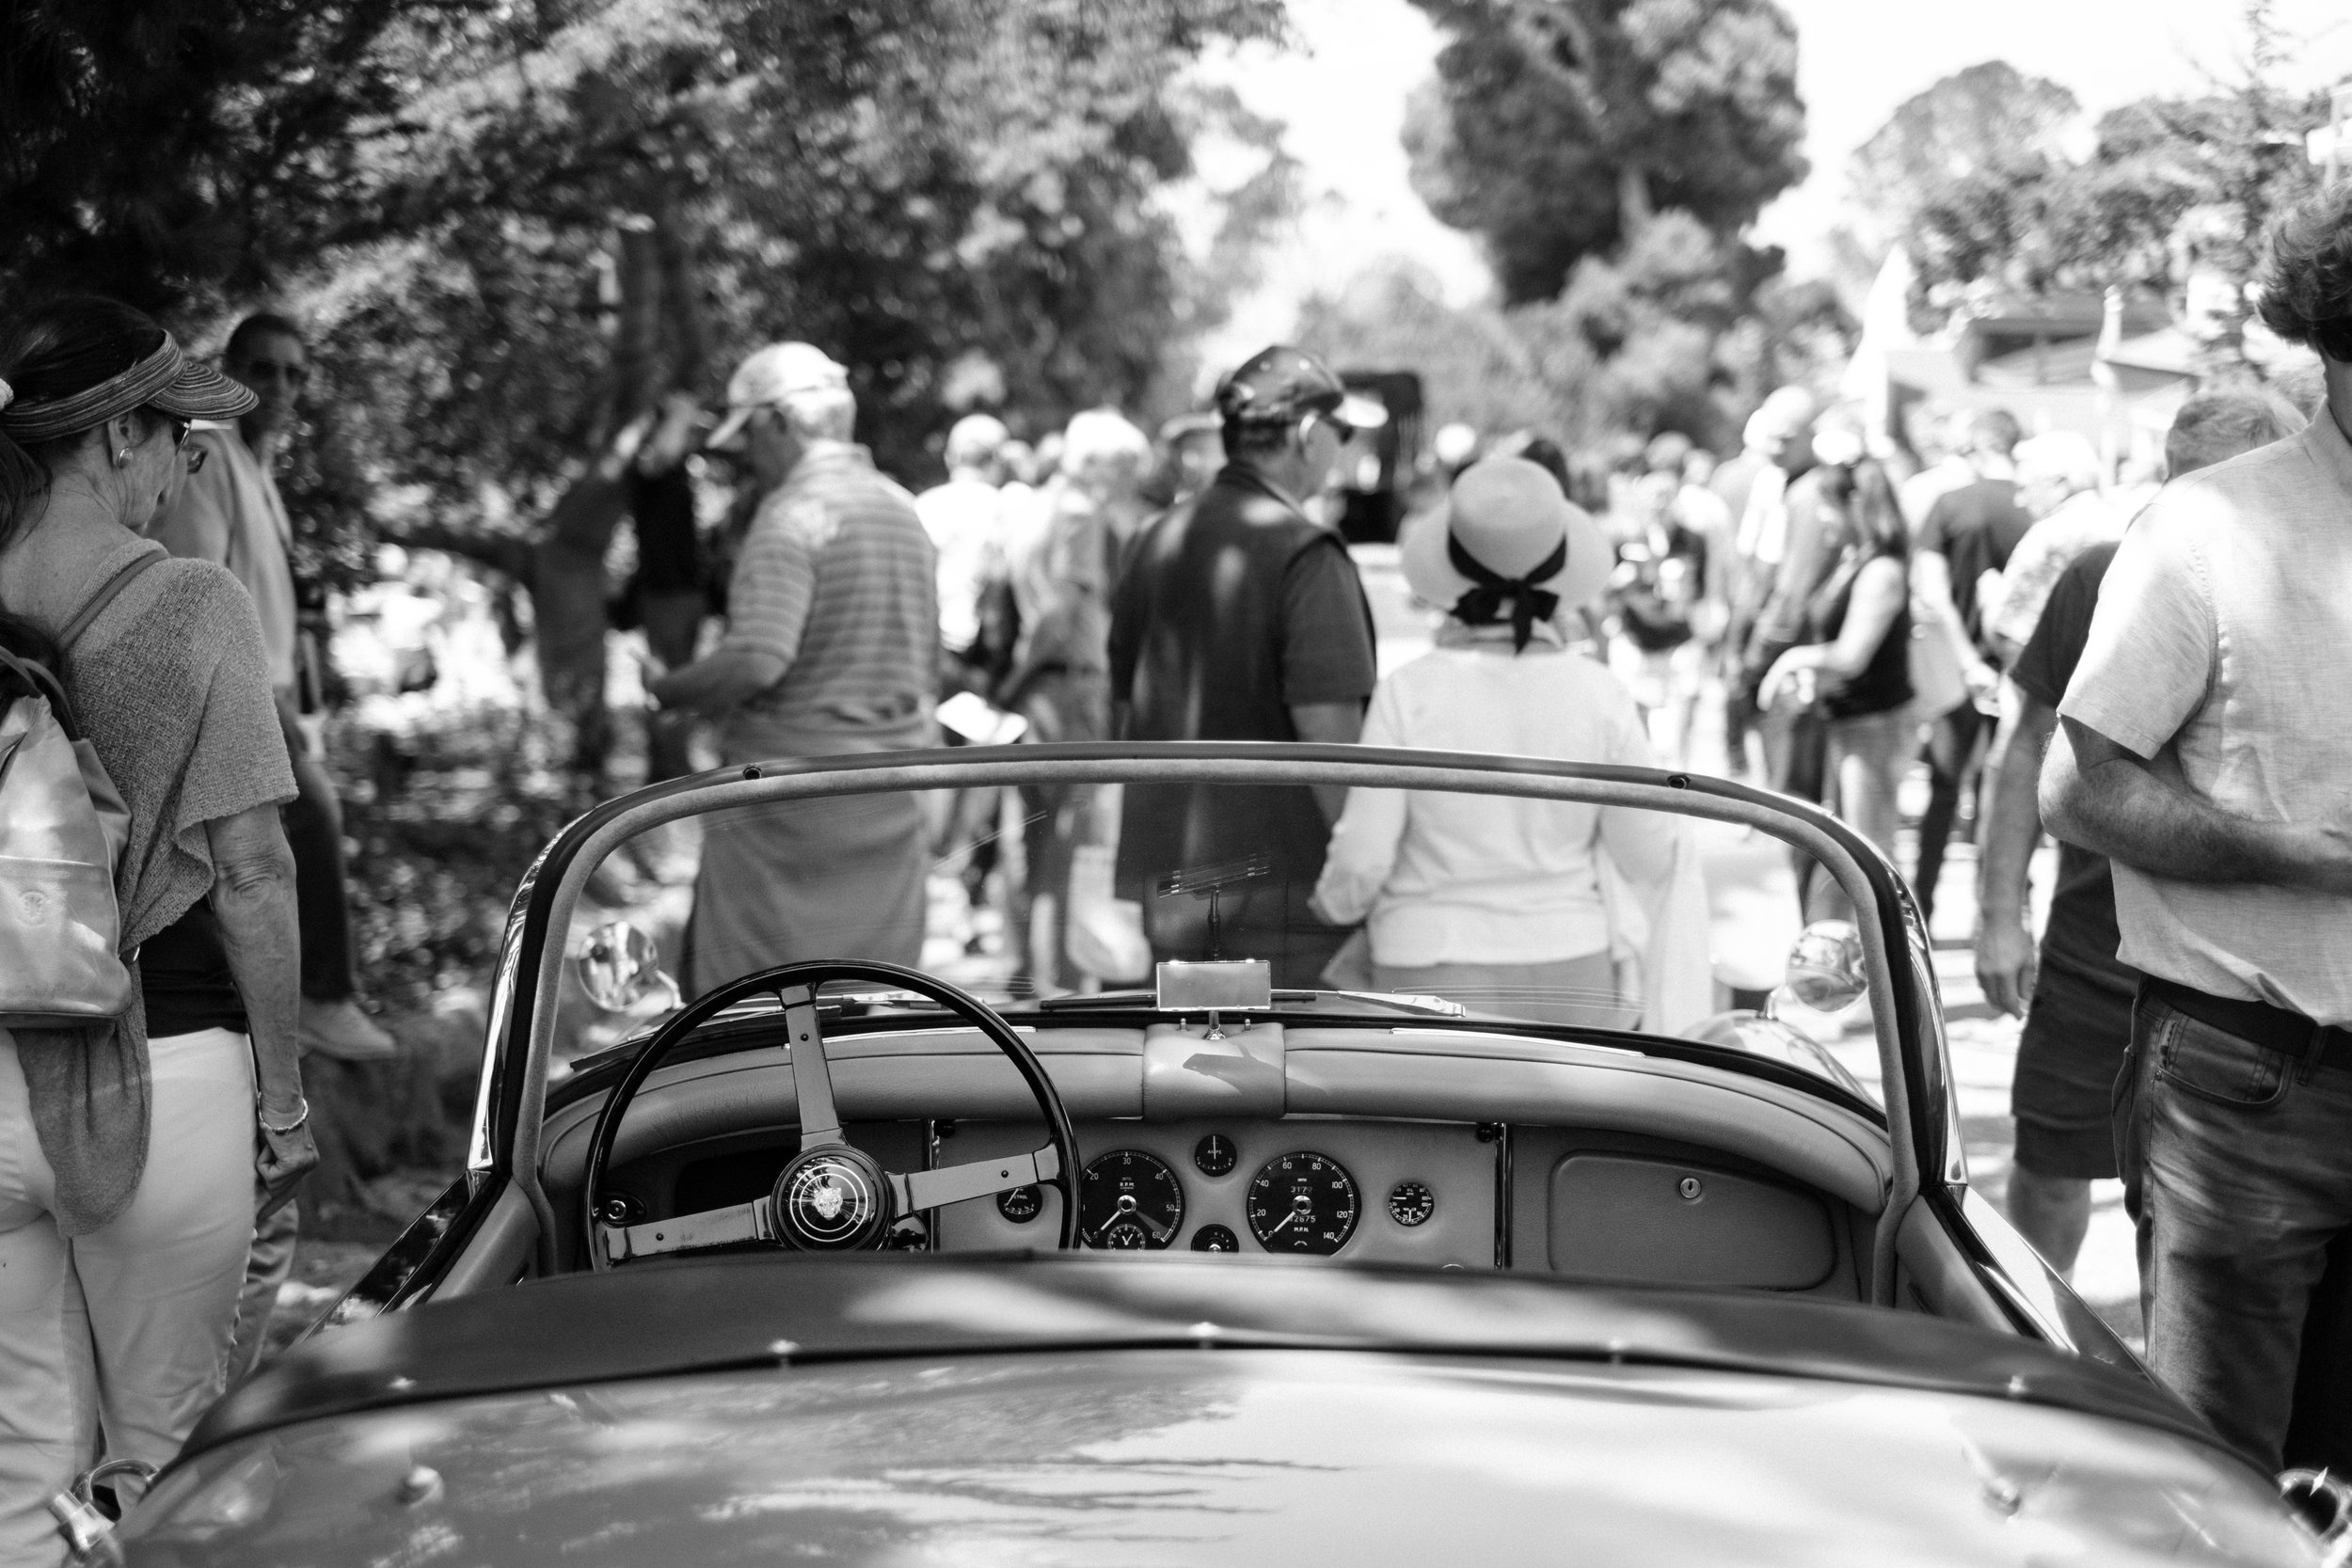 A classic sports car and crowds at Pebble Beach California